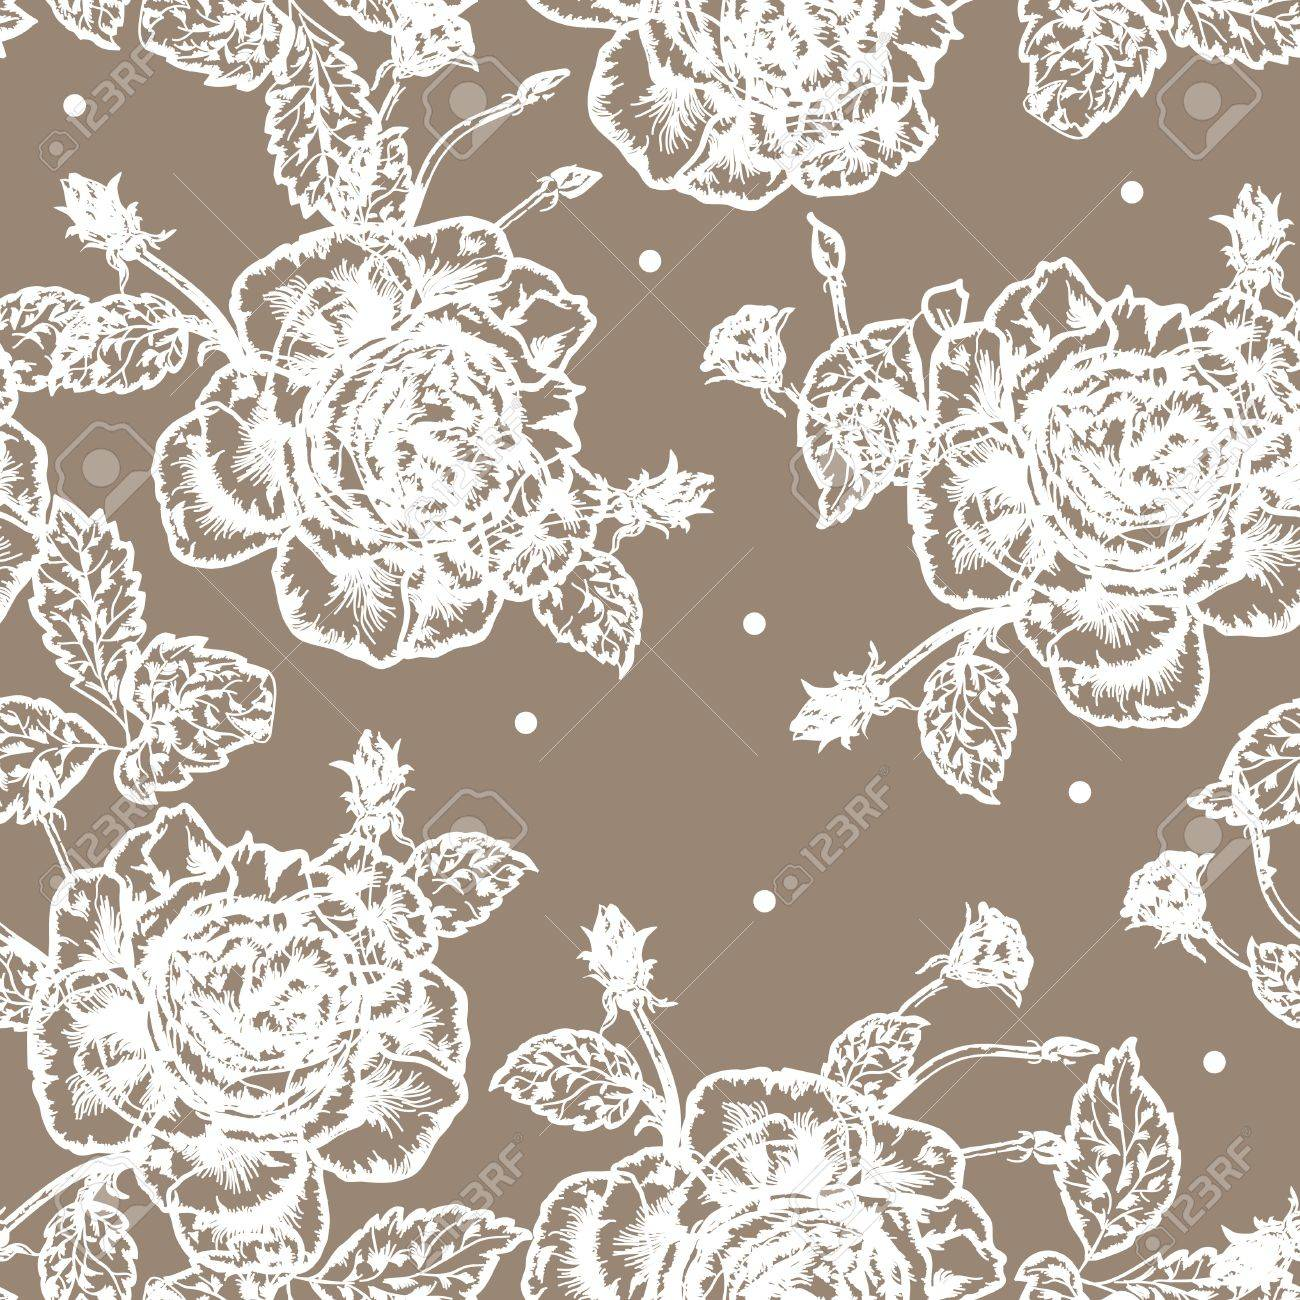 Beautiful vintage styled seamless background with white rose pattern. Stock Vector - 10289528